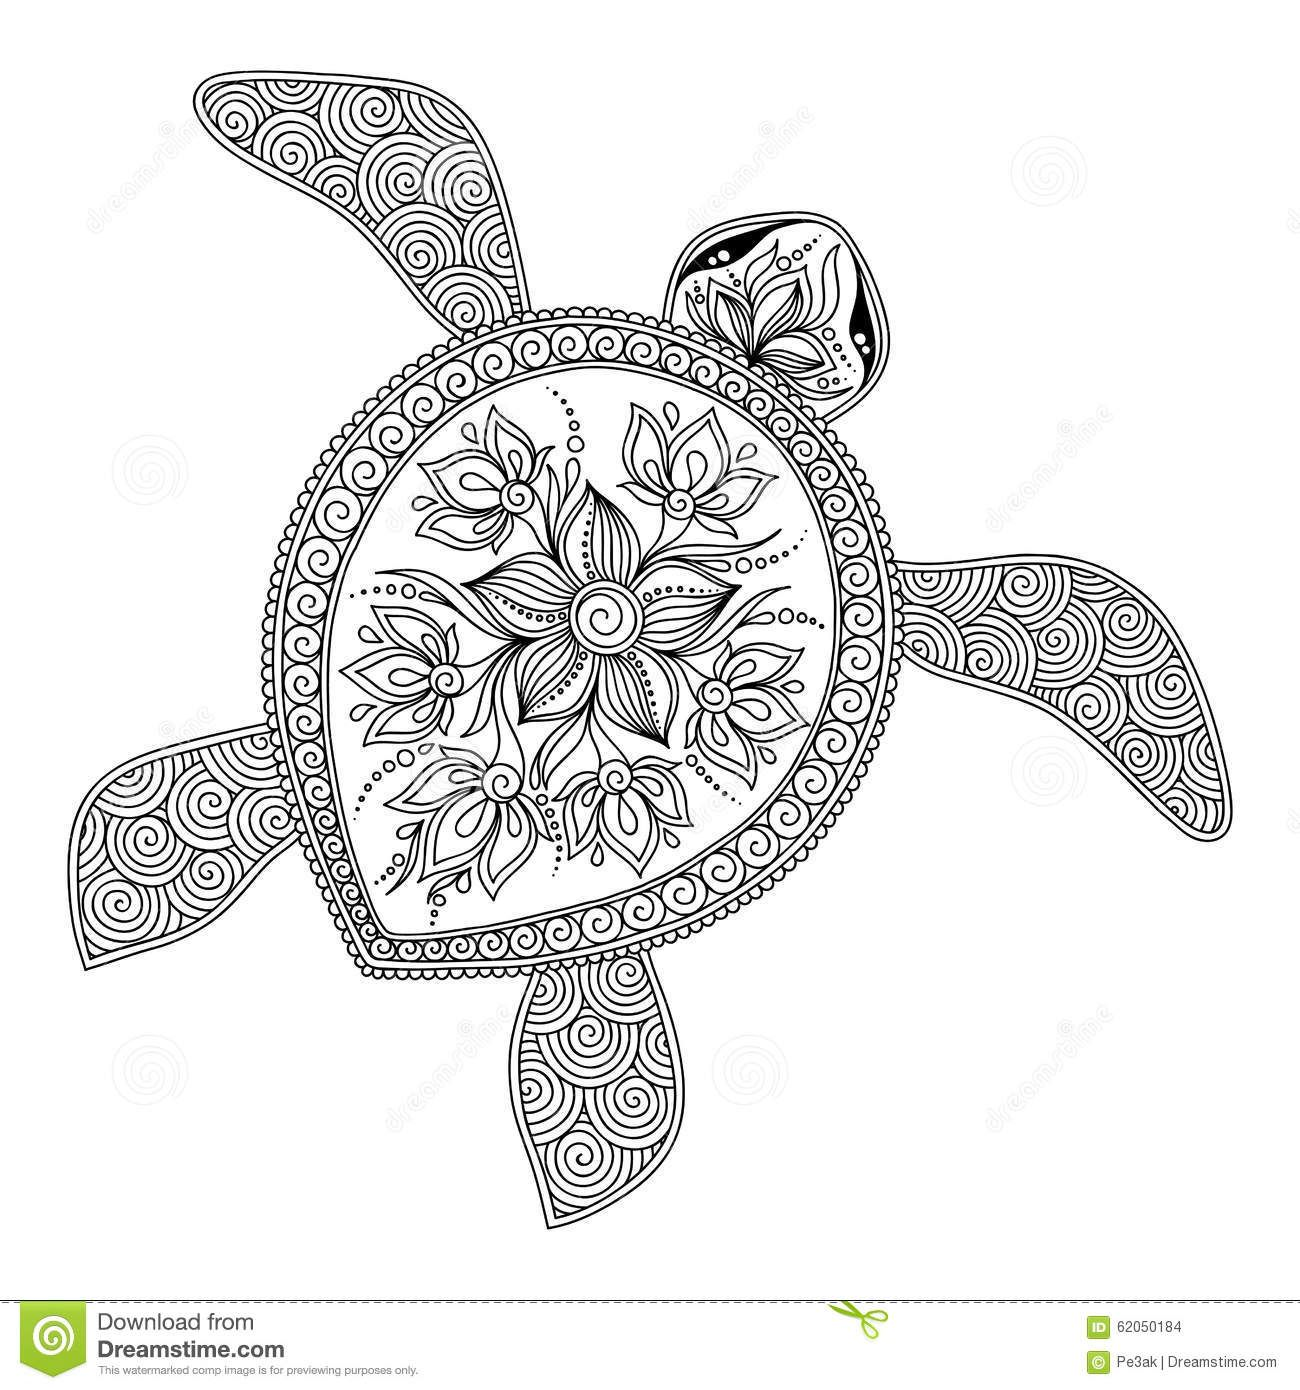 Pattern For Coloring Book. Decorative Graphic Turtle. Stock Vector ...